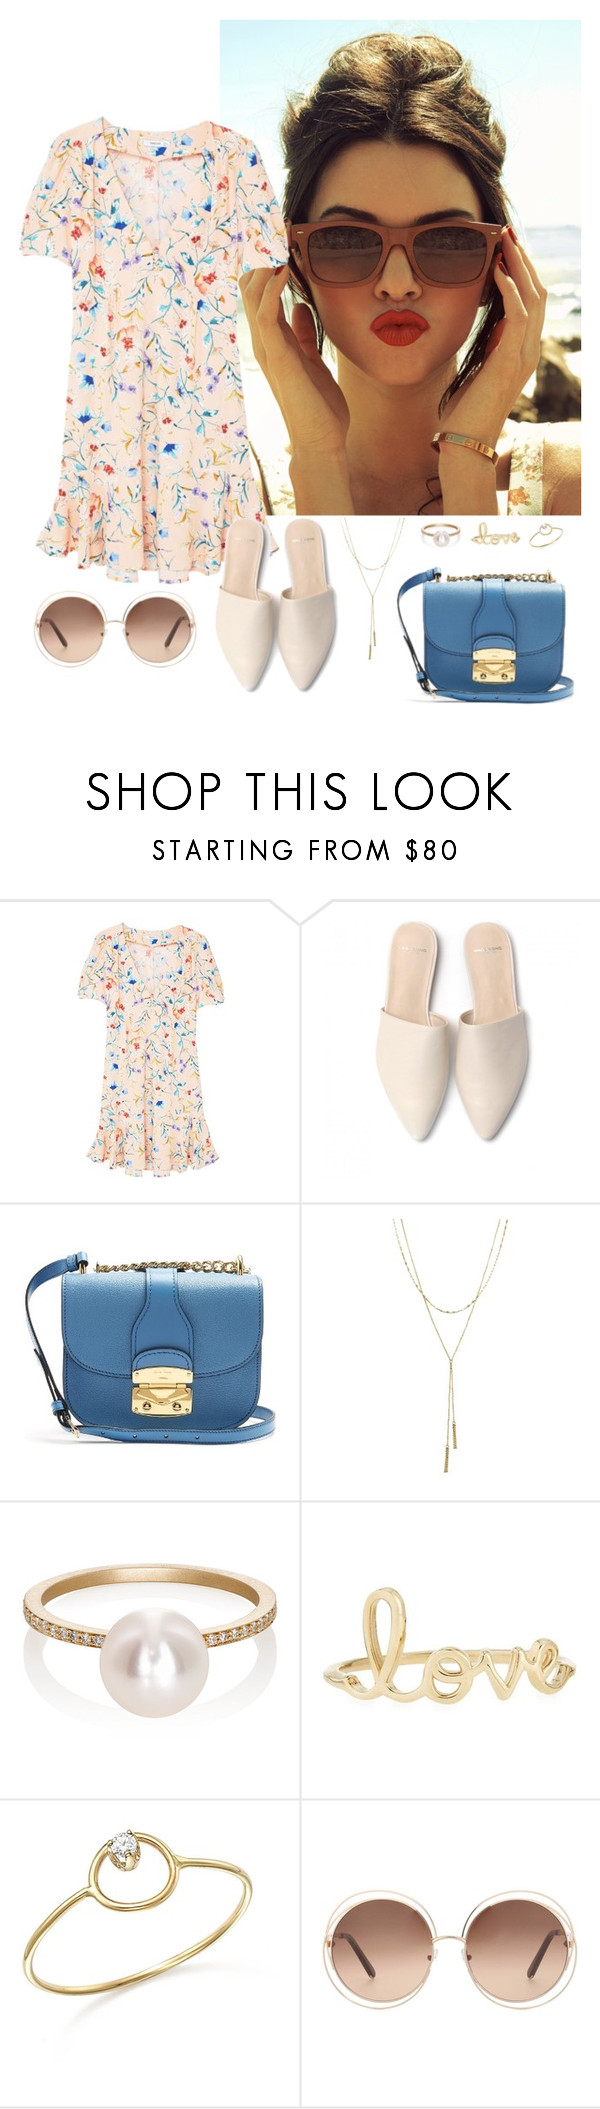 """""""Untitled #57"""" by rafieldshow ❤ liked on Polyvore featuring MANGO, Miu Miu, Bloomingdale's, Sophie Bille Brahe, Sydney Evan, ZoÃ« Chicco and Chloé"""